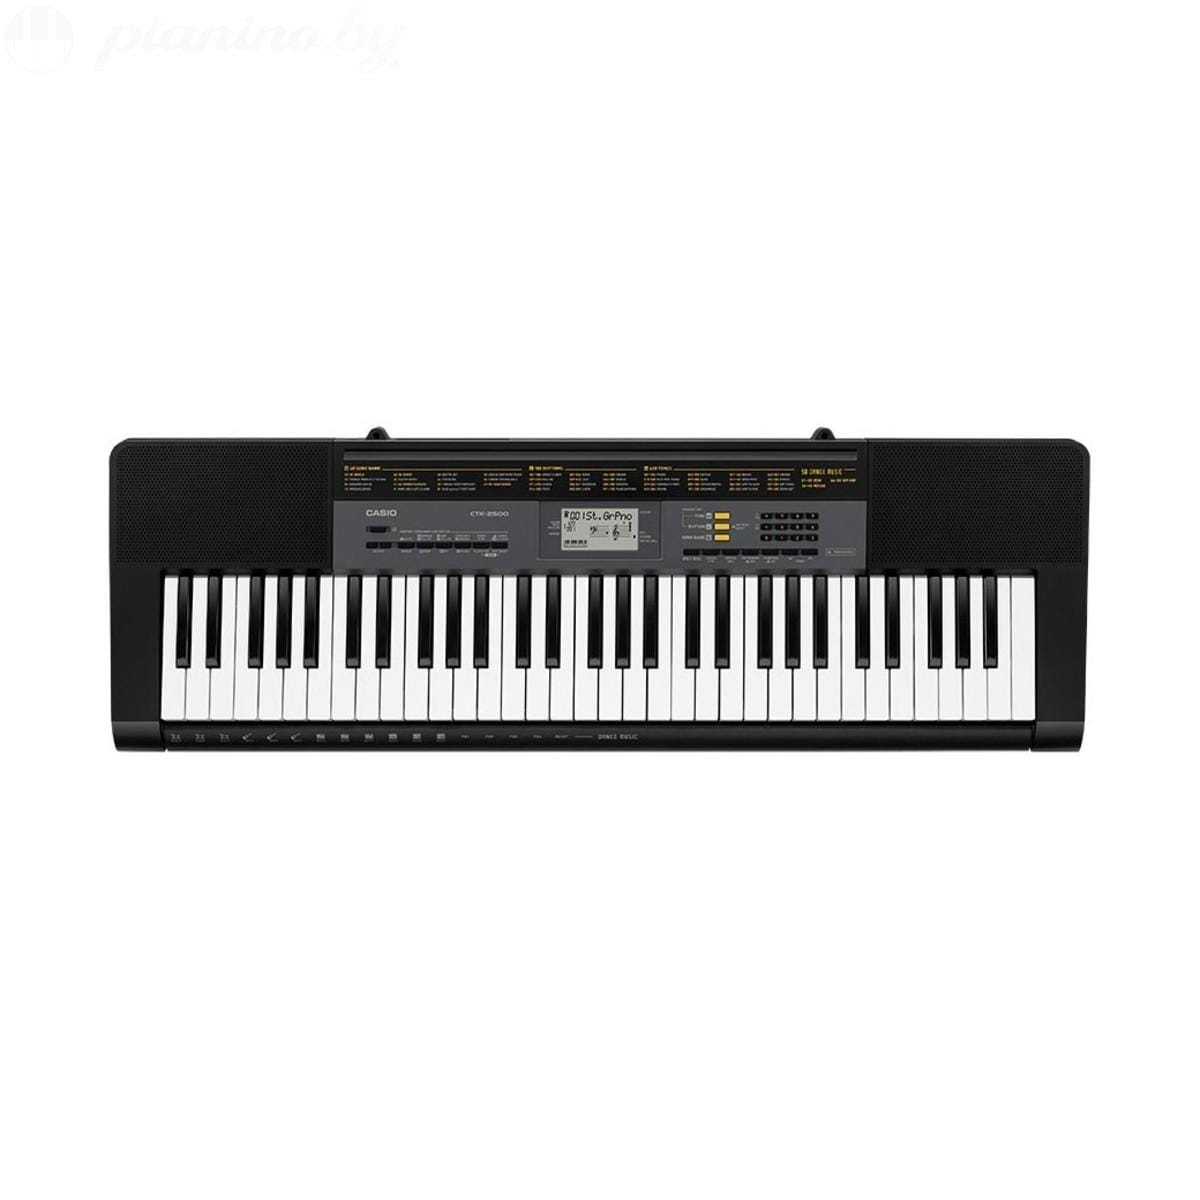 Синтезатор Casio CTK-2500 Фото 1